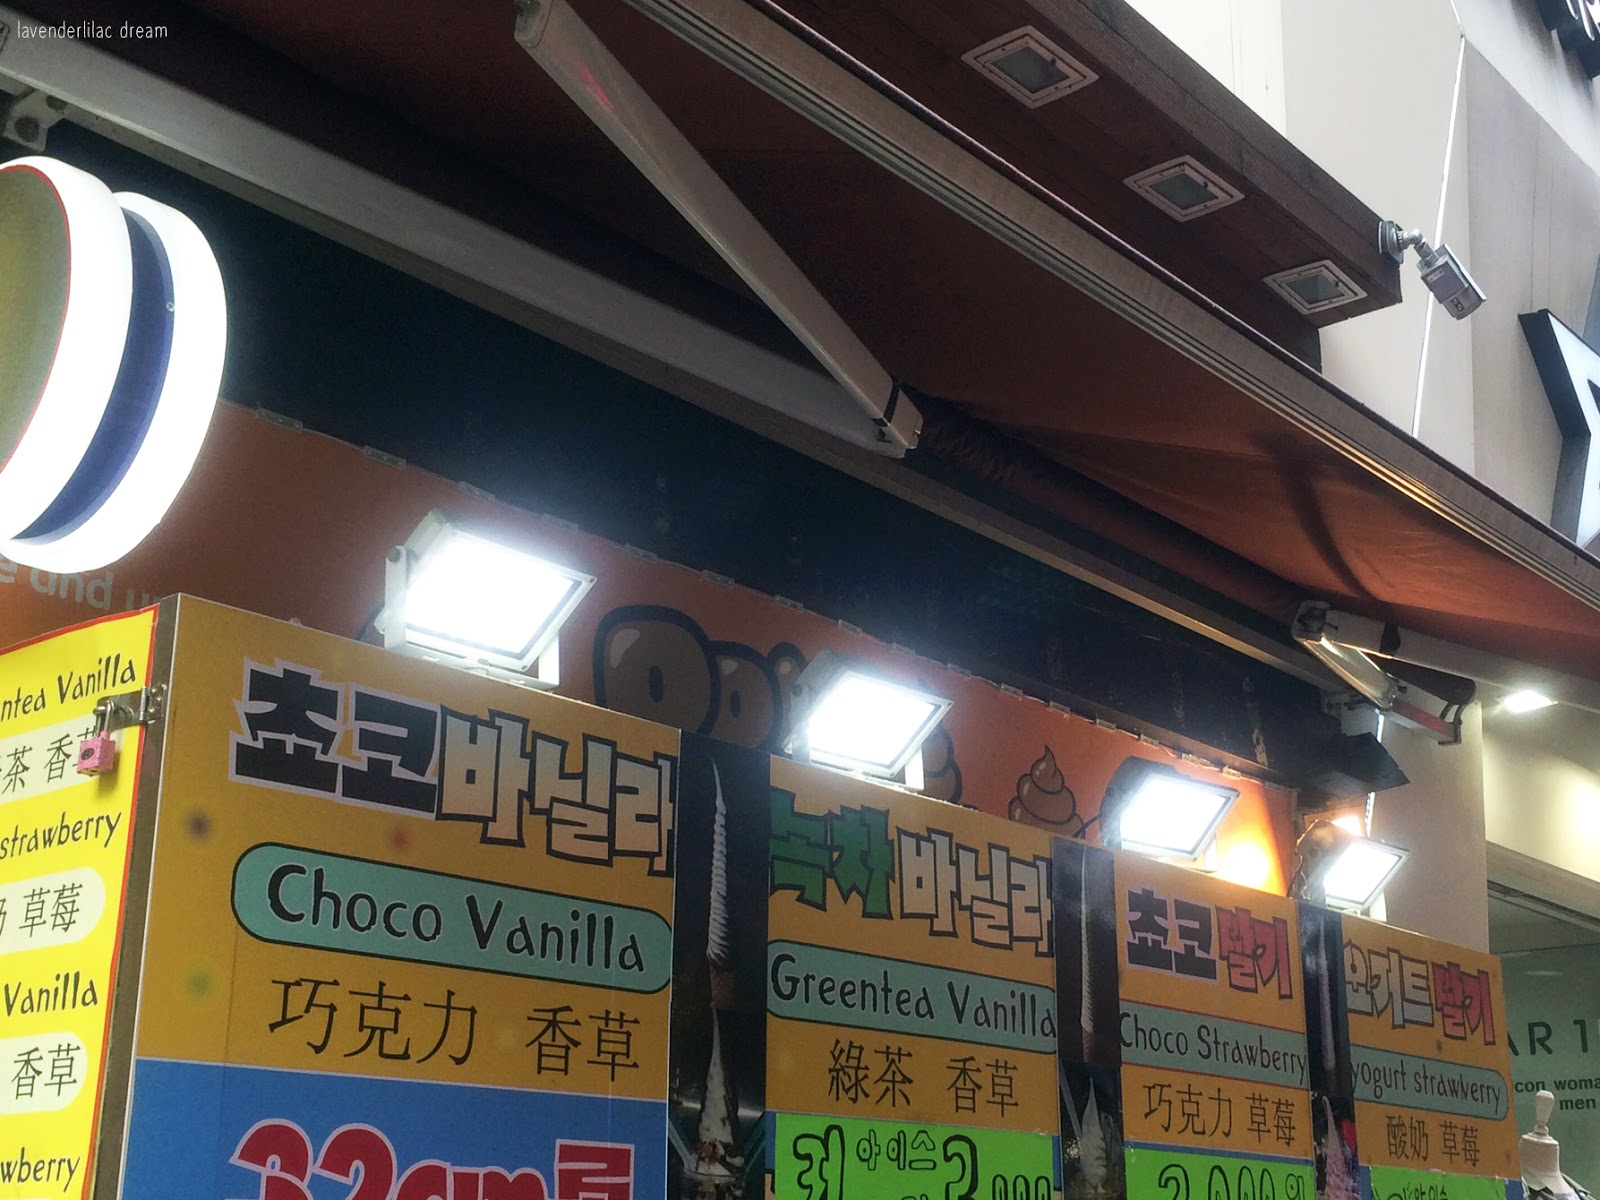 South Korea, Seoul, Myeongdong, YISS 2014, 32cm Frozen Yogurt